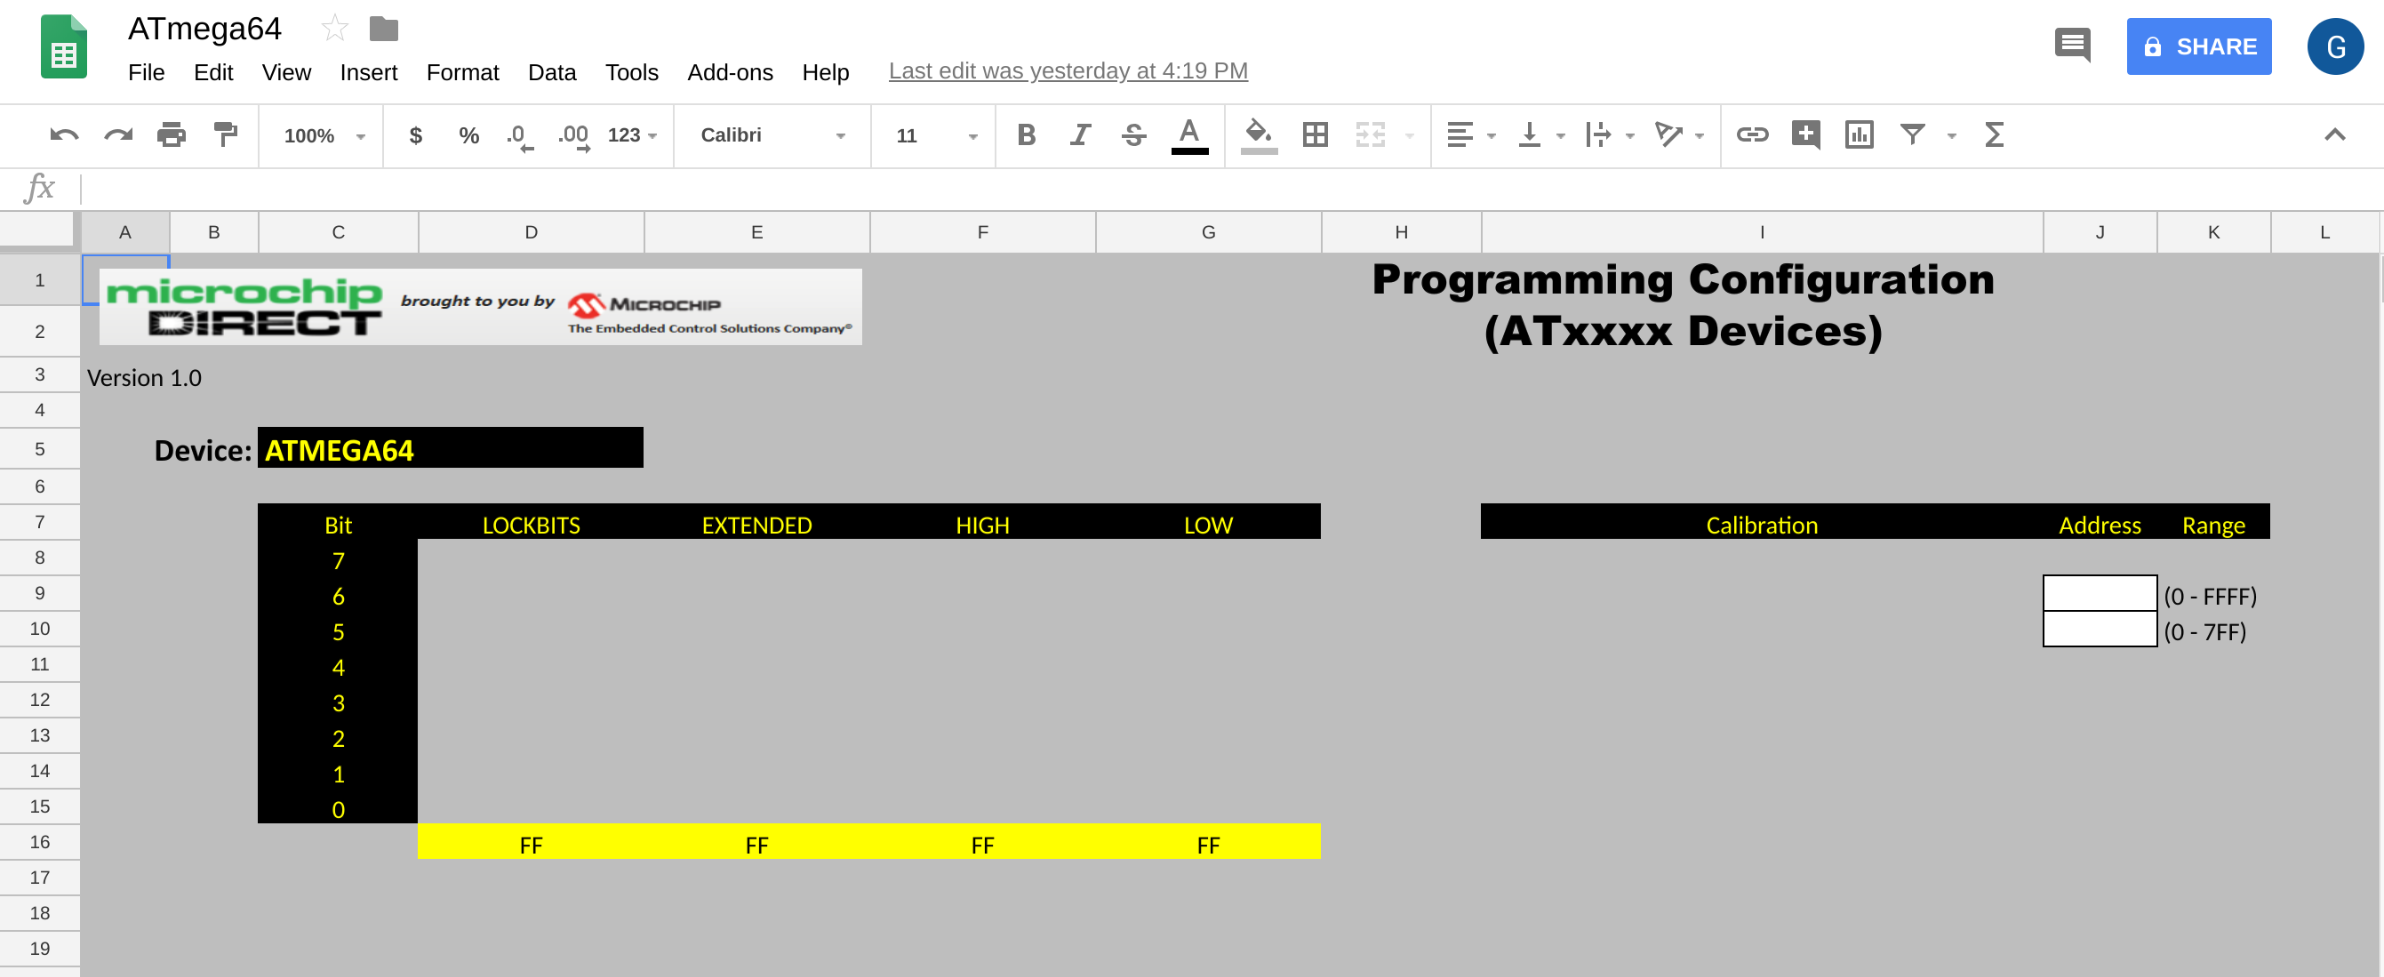 Google spreadsheet for ATmega64 at microchipDIRECT, fuses and calibration